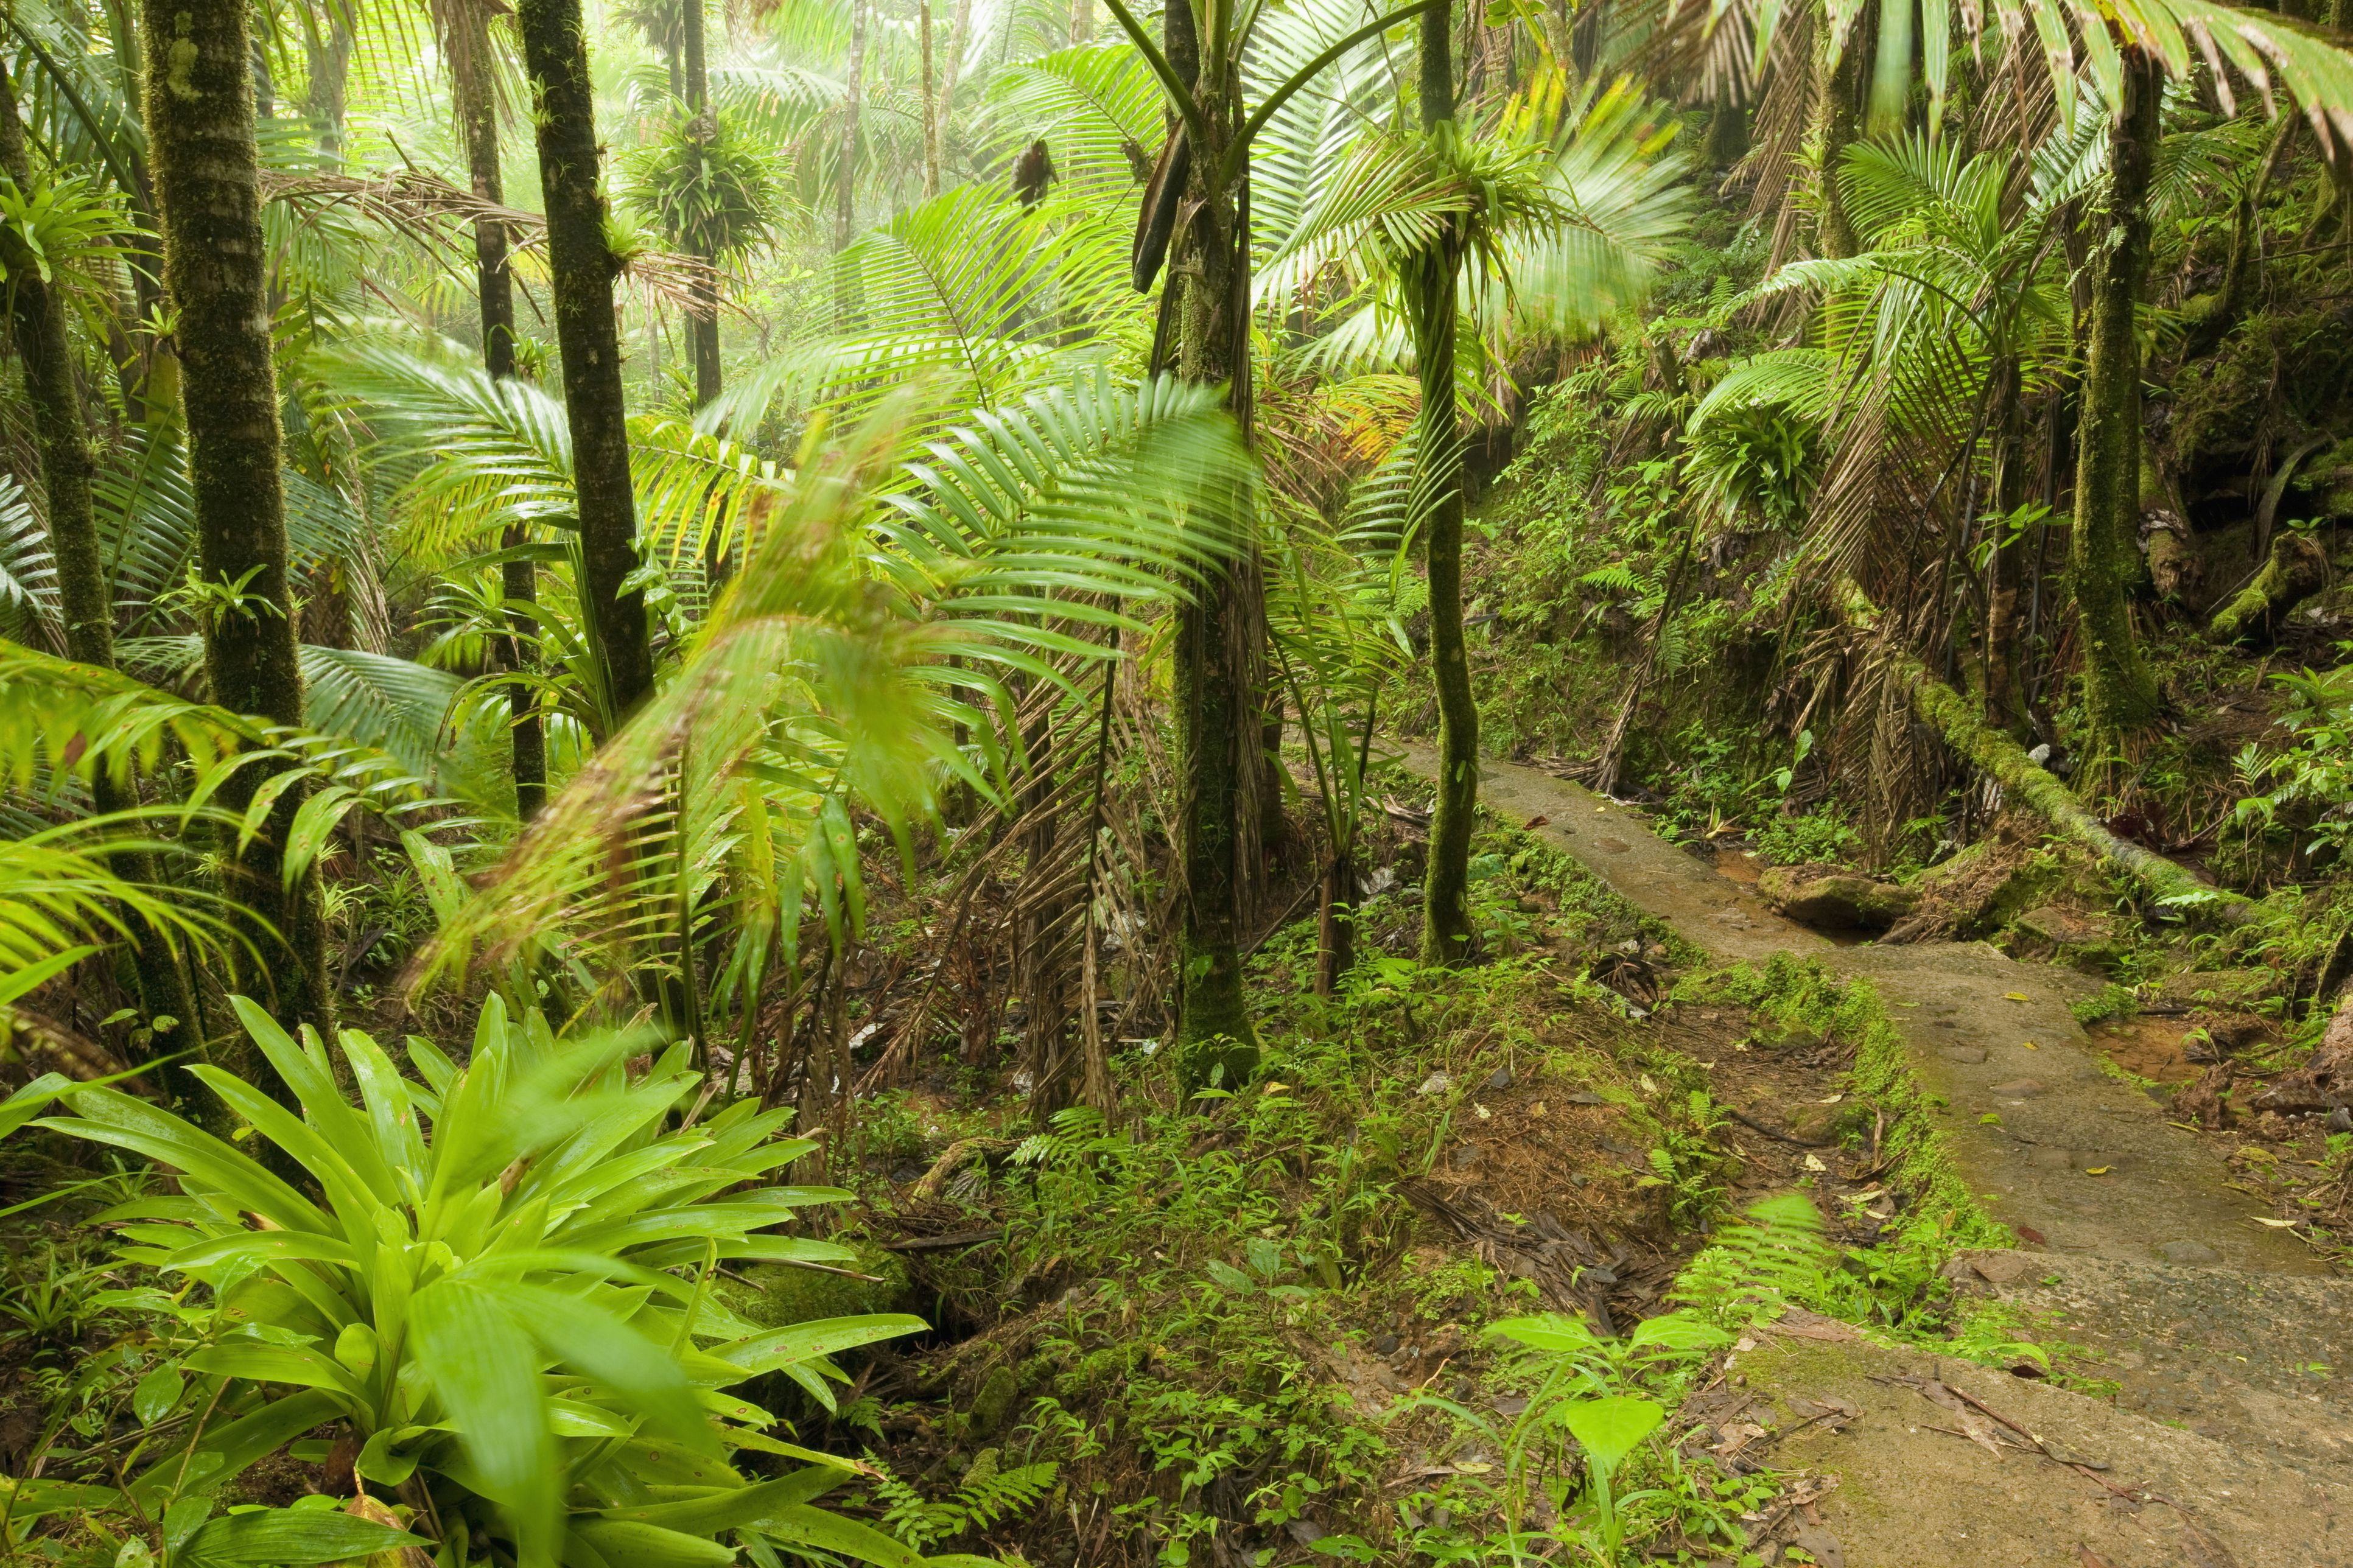 Mt. Britton Lookout trail, El Yunque National Forest, Puerto Rico